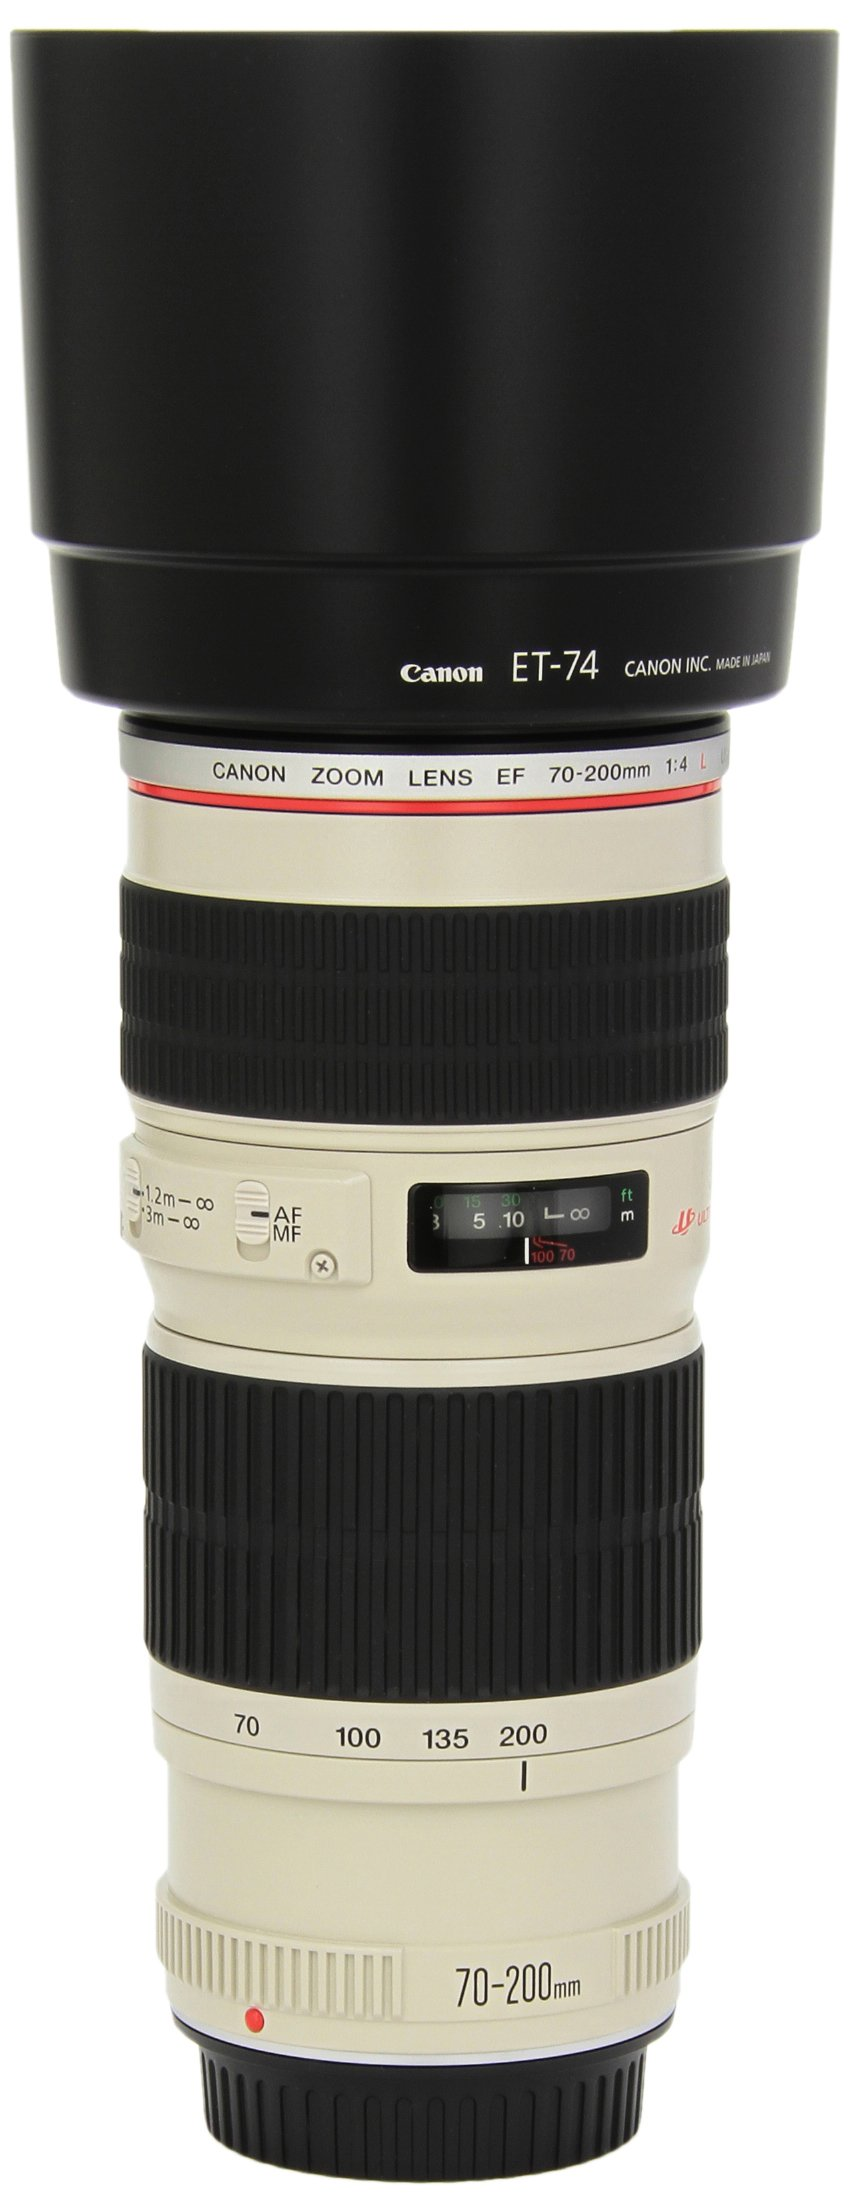 Canon EF 70-200mm f/4L USM Telephoto Zoom Lens for Canon SLR Cameras by Canon